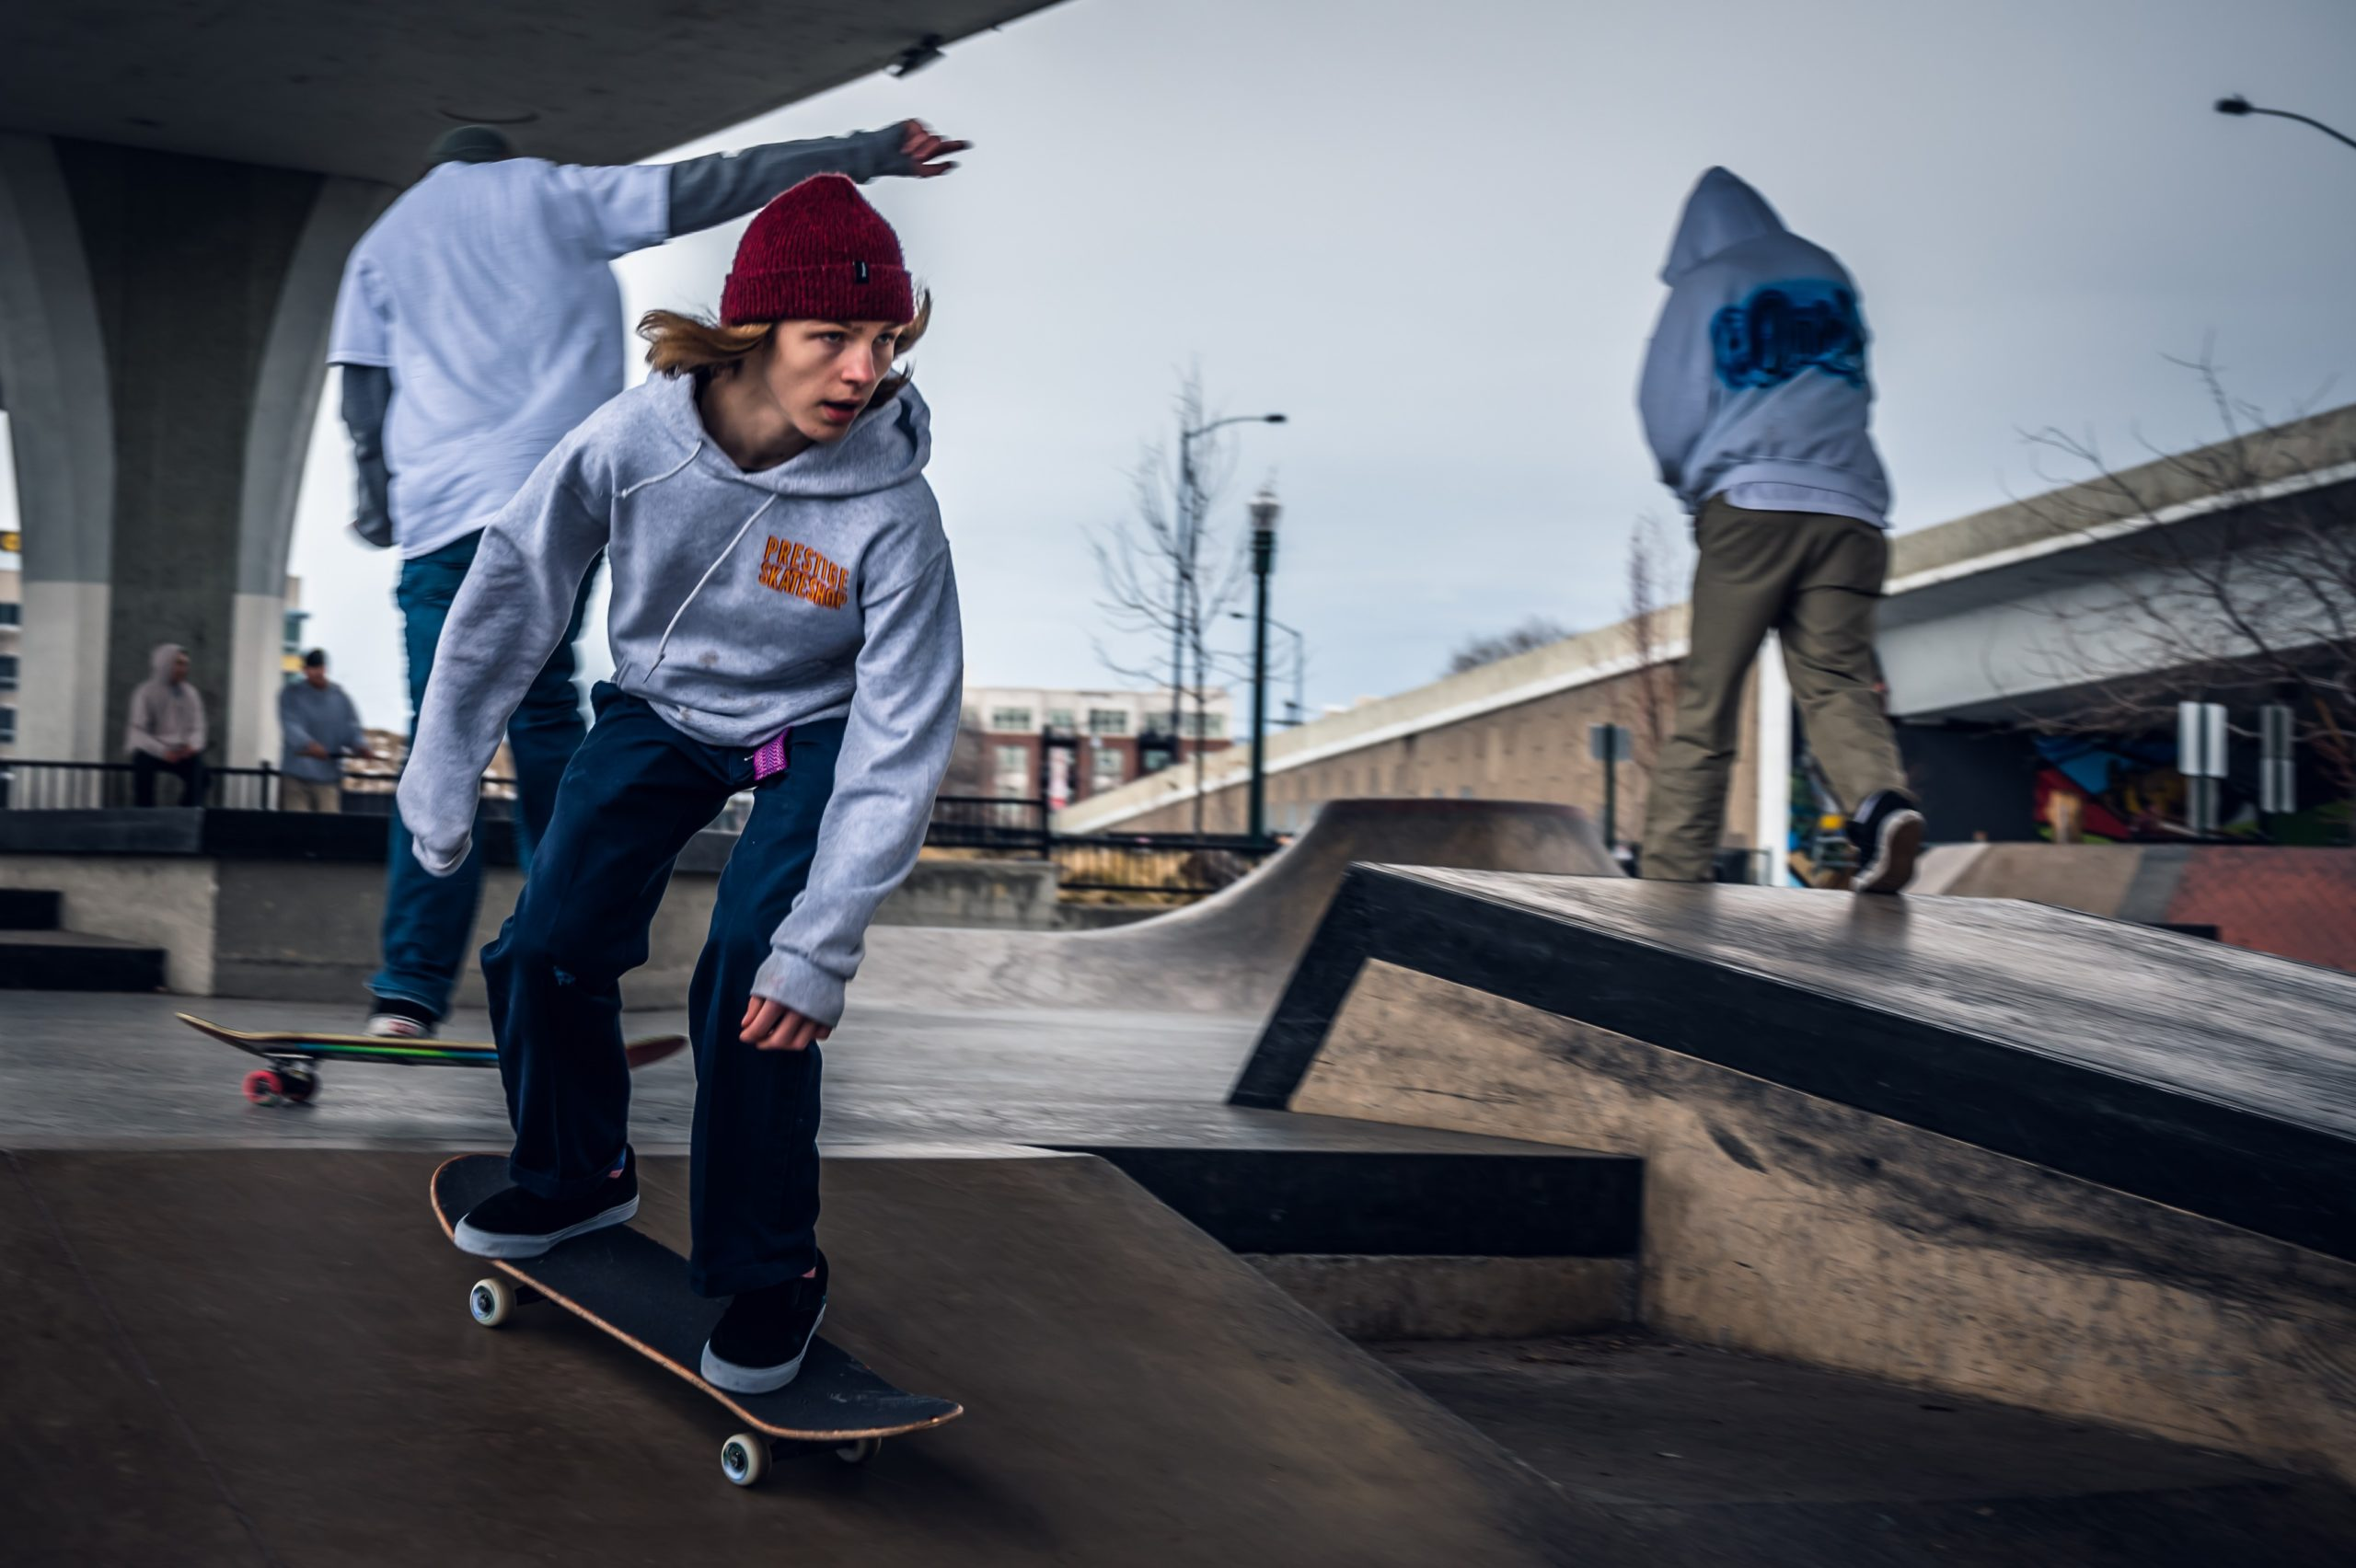 All About Skateboard For Kids And Buying Tips